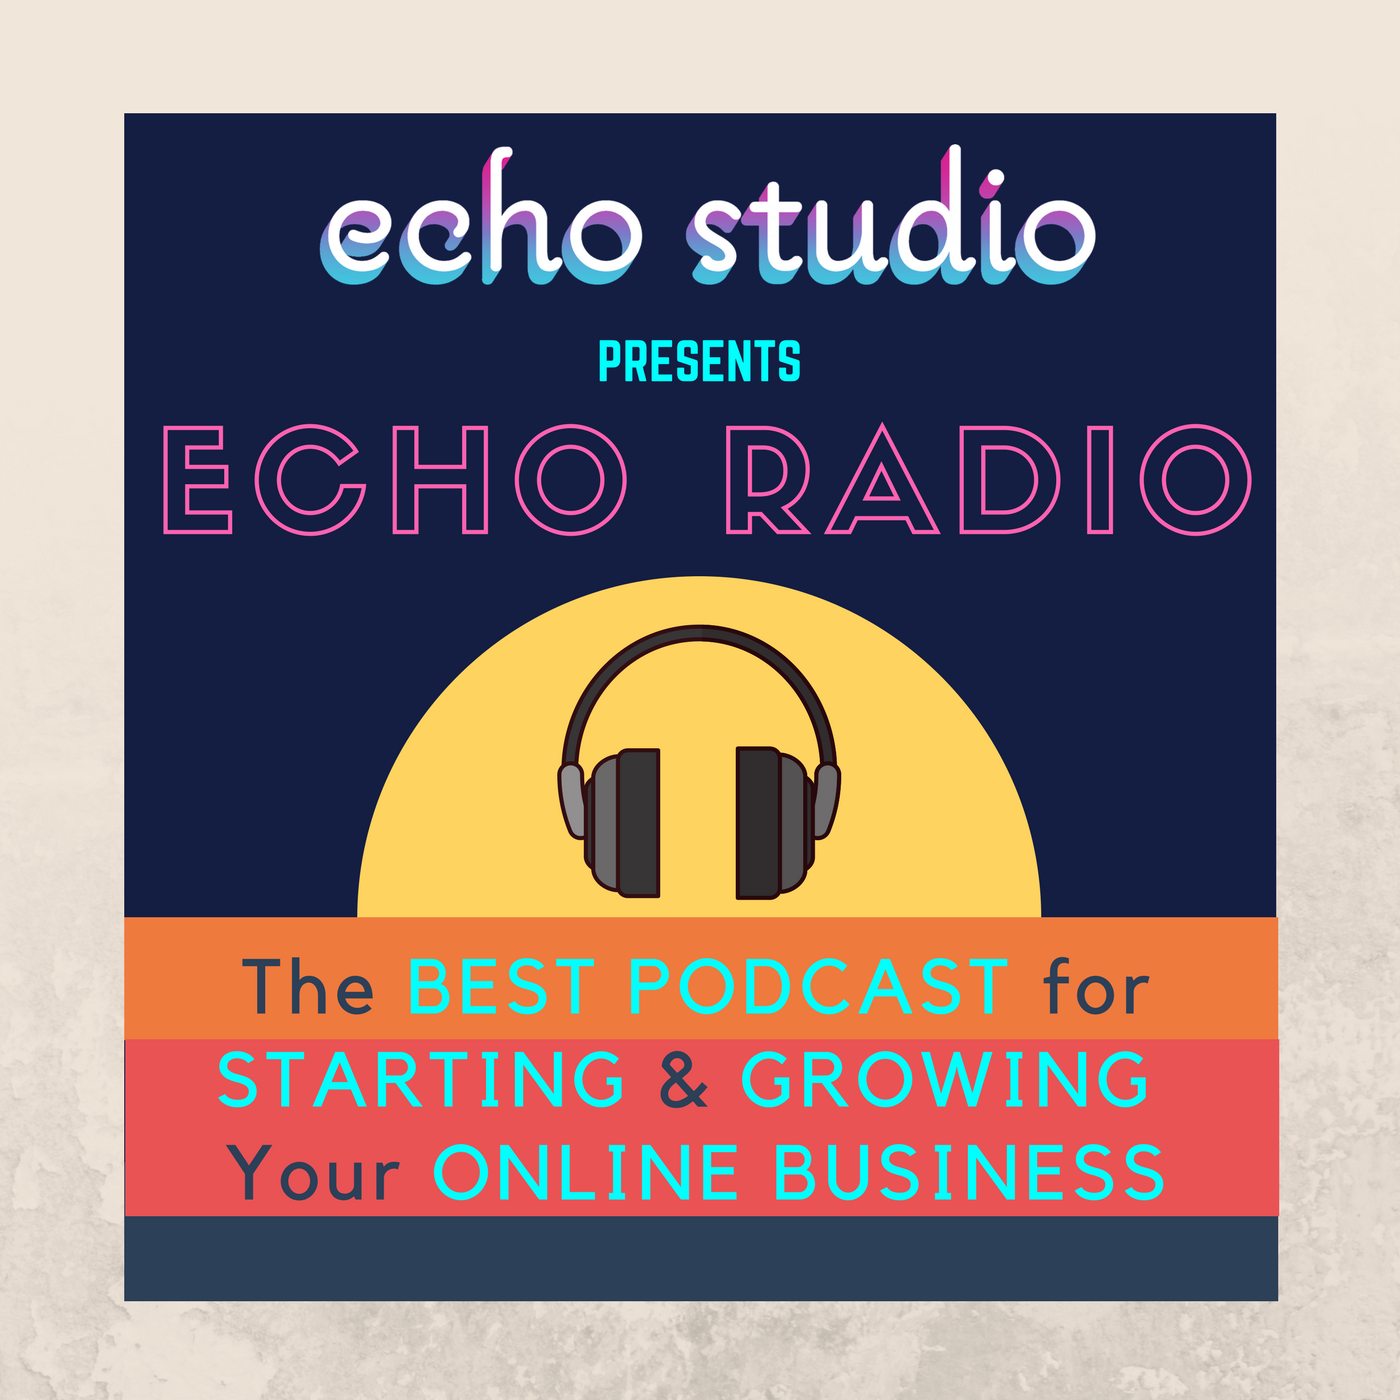 adrien-harrison-echo-studio-echo-radio-the-best-podcast-for-starting-and-growing-your-online-business.png